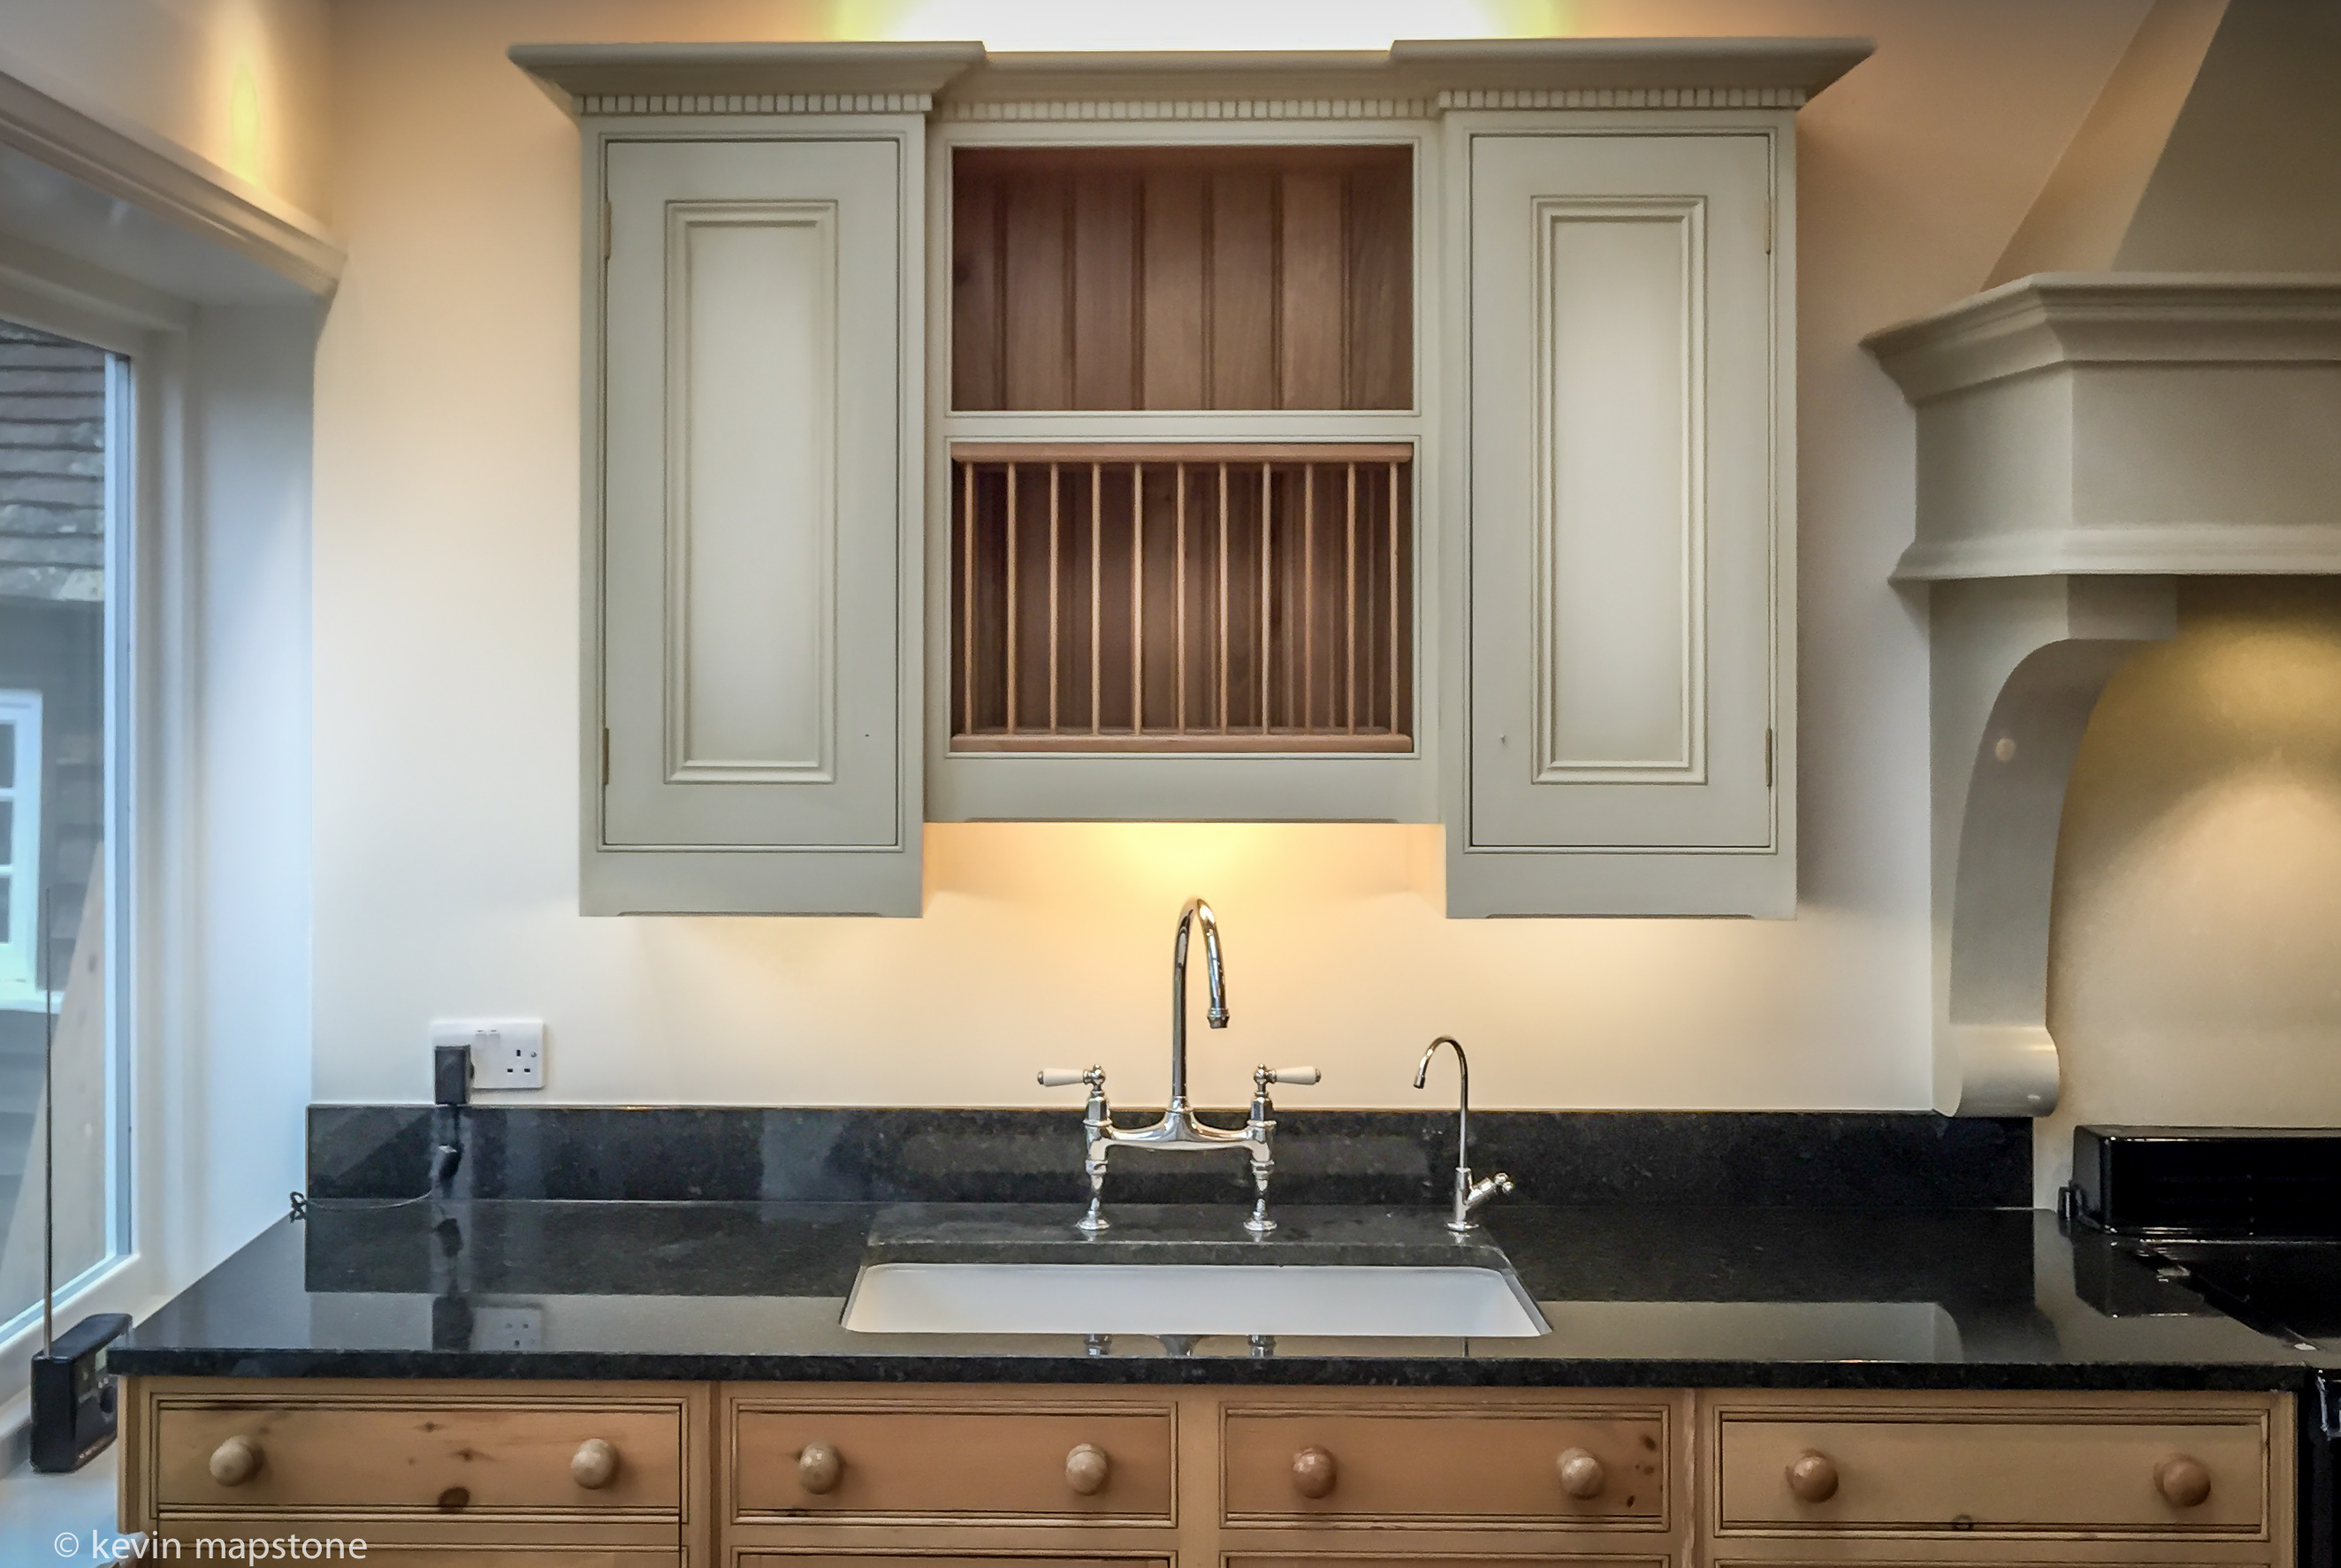 hand painted kitchen cabinets gerrards cross buckinghamshire